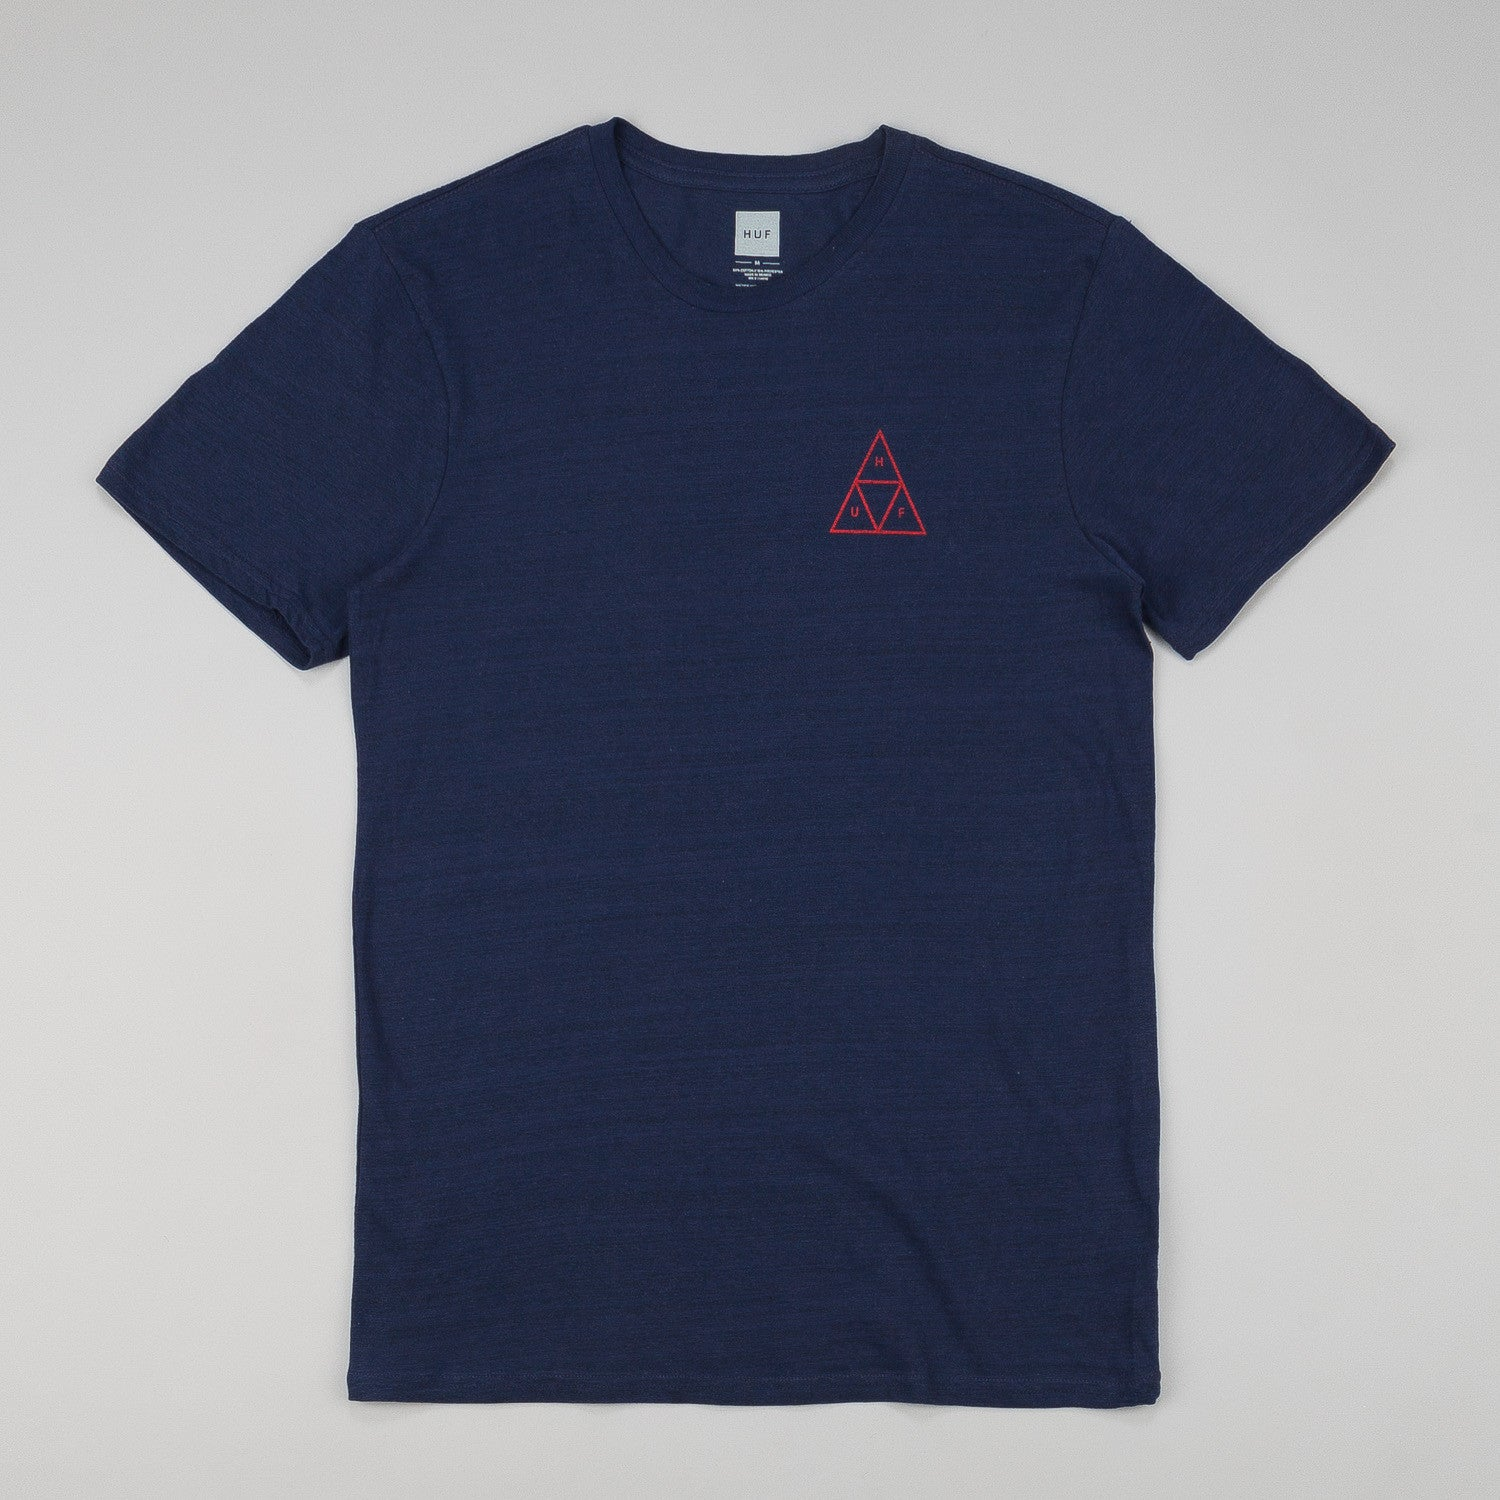 Huf Streaky Wash T-Shirt